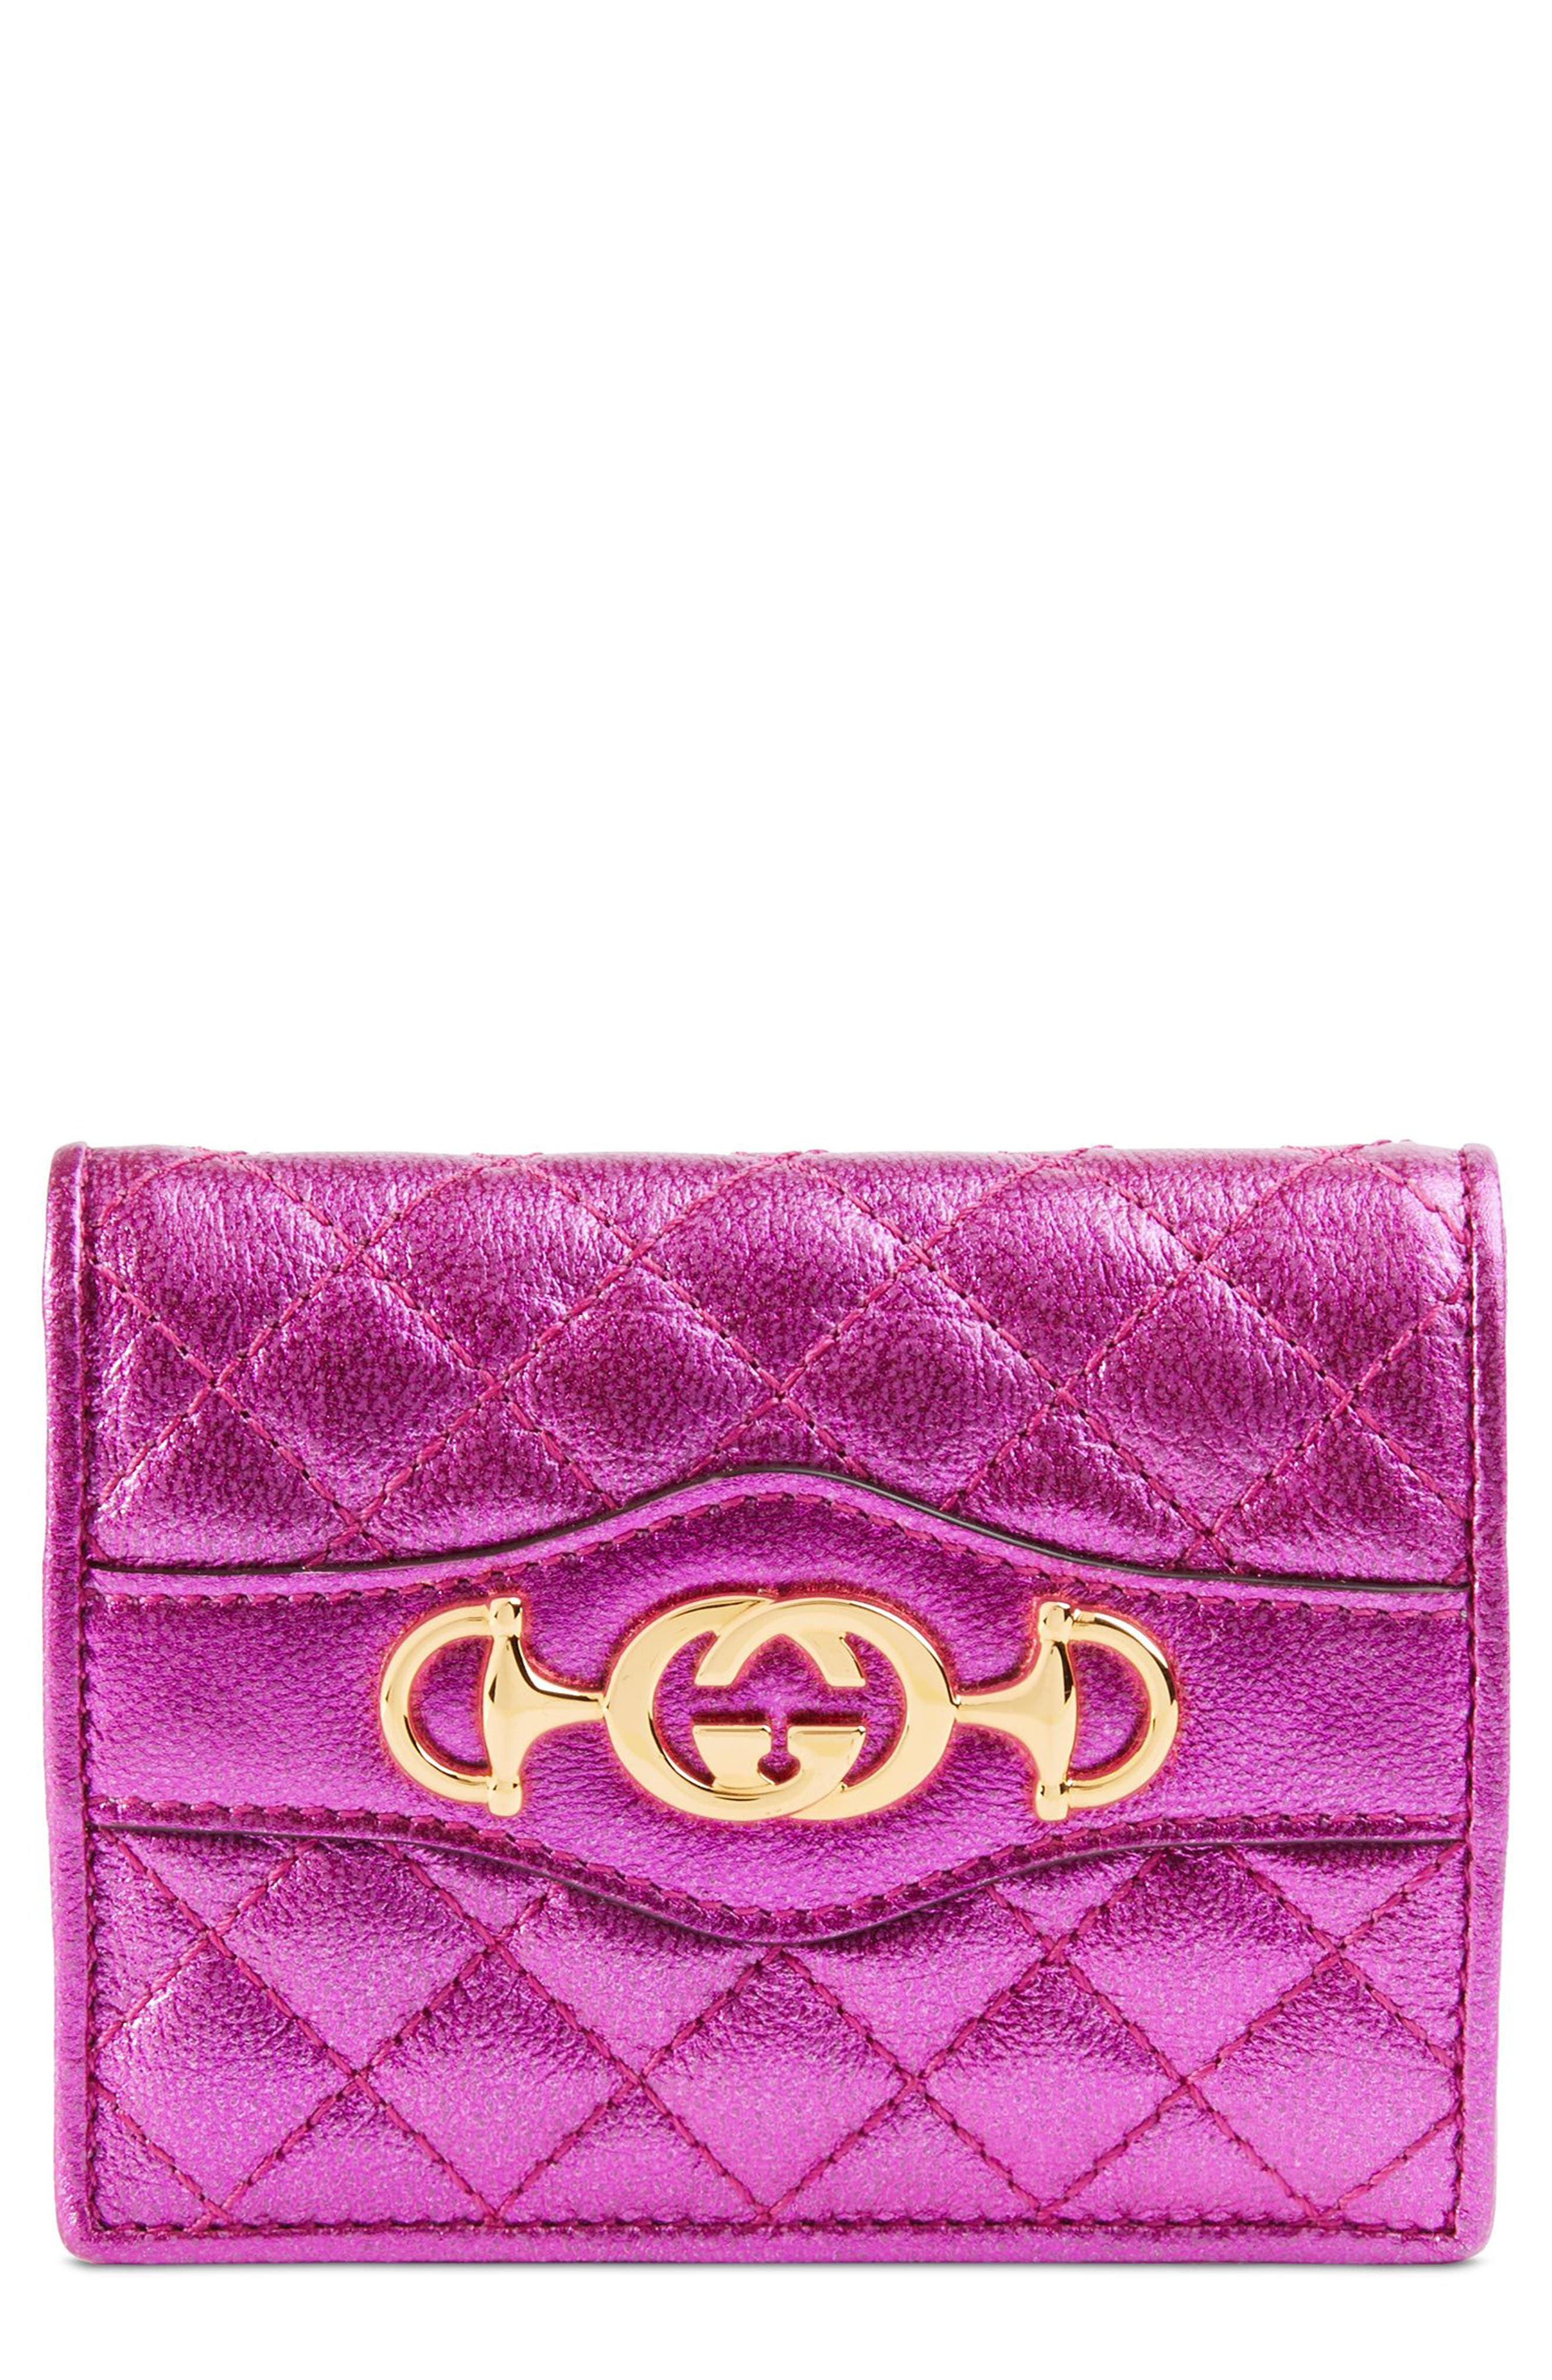 Quilted Leather Card Case,                             Main thumbnail 1, color,                             FUXIA